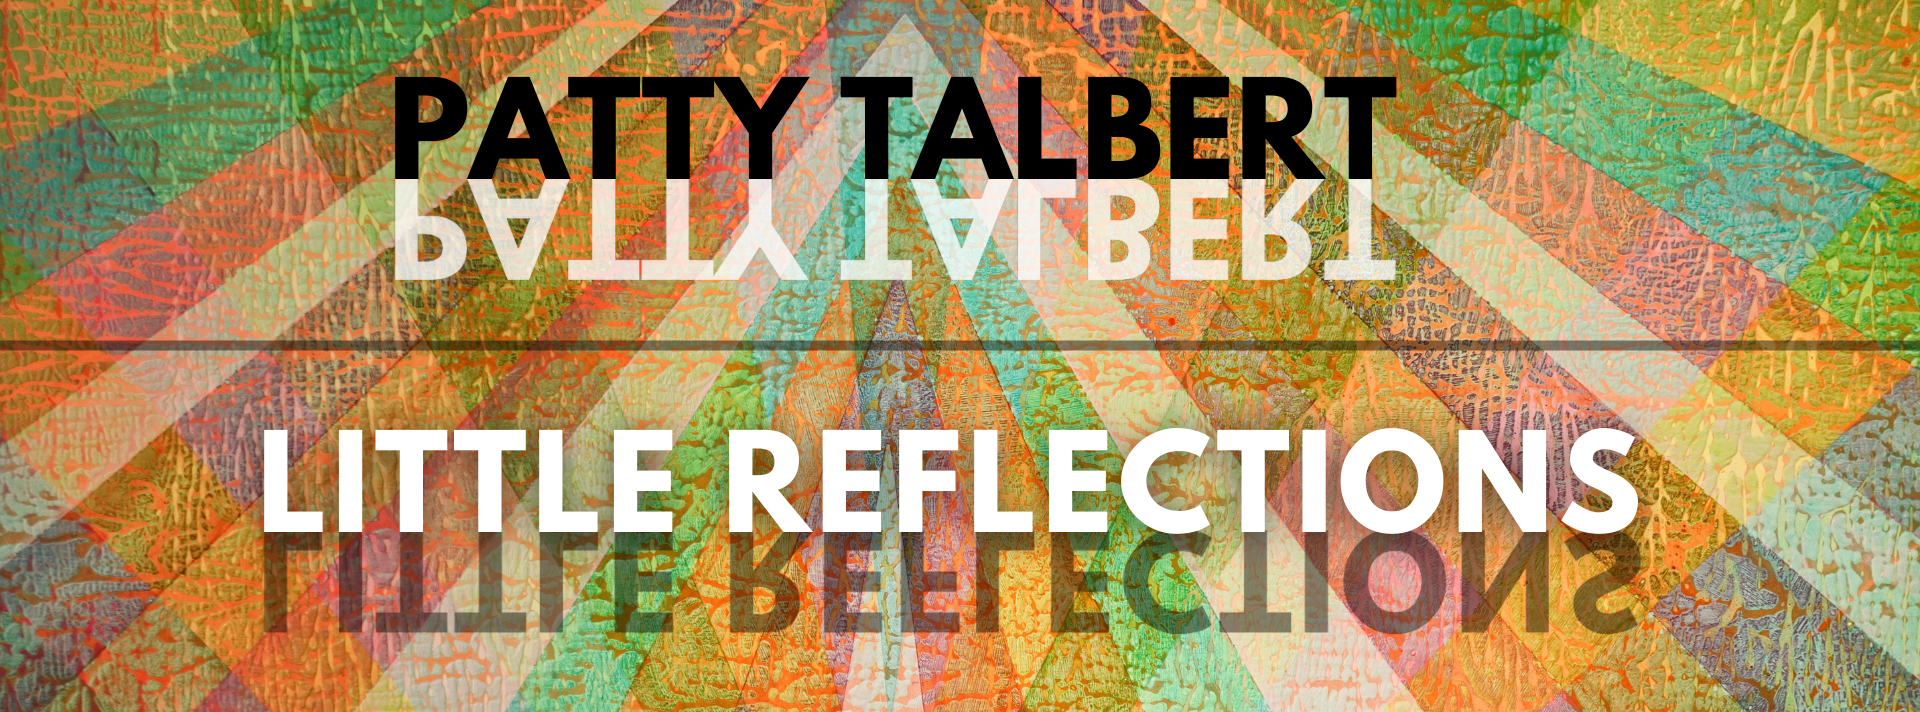 Patty Talbert Little Reflections text against bright textured painting by Patty